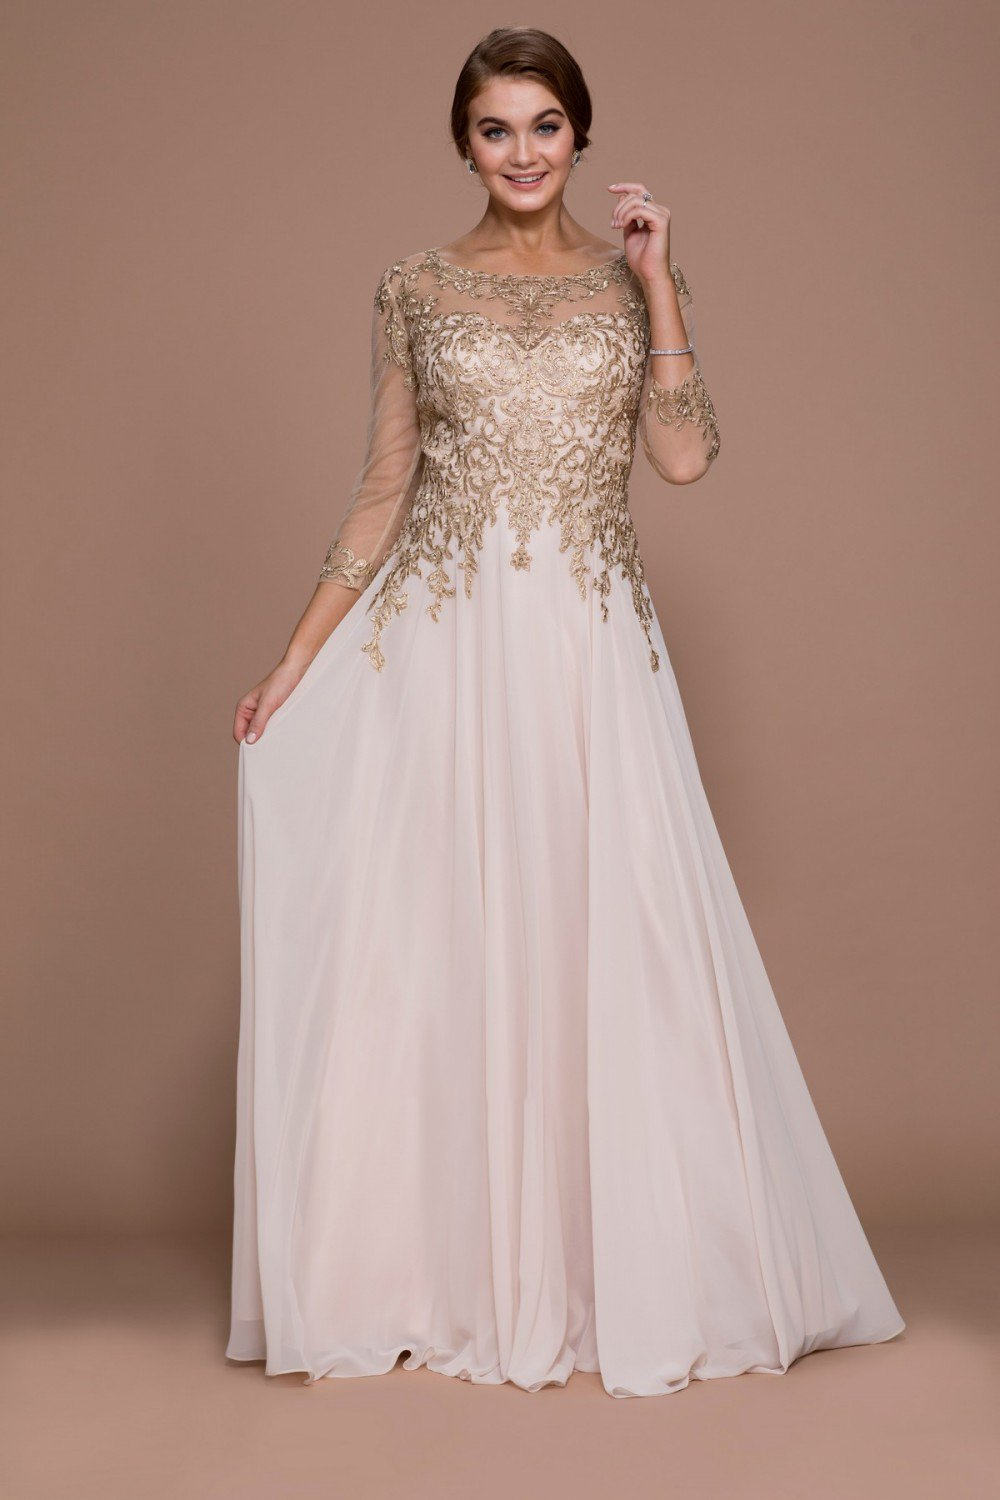 Nox Anabel - Illusion Appliqued A-Line Long Dress J501 In Gold